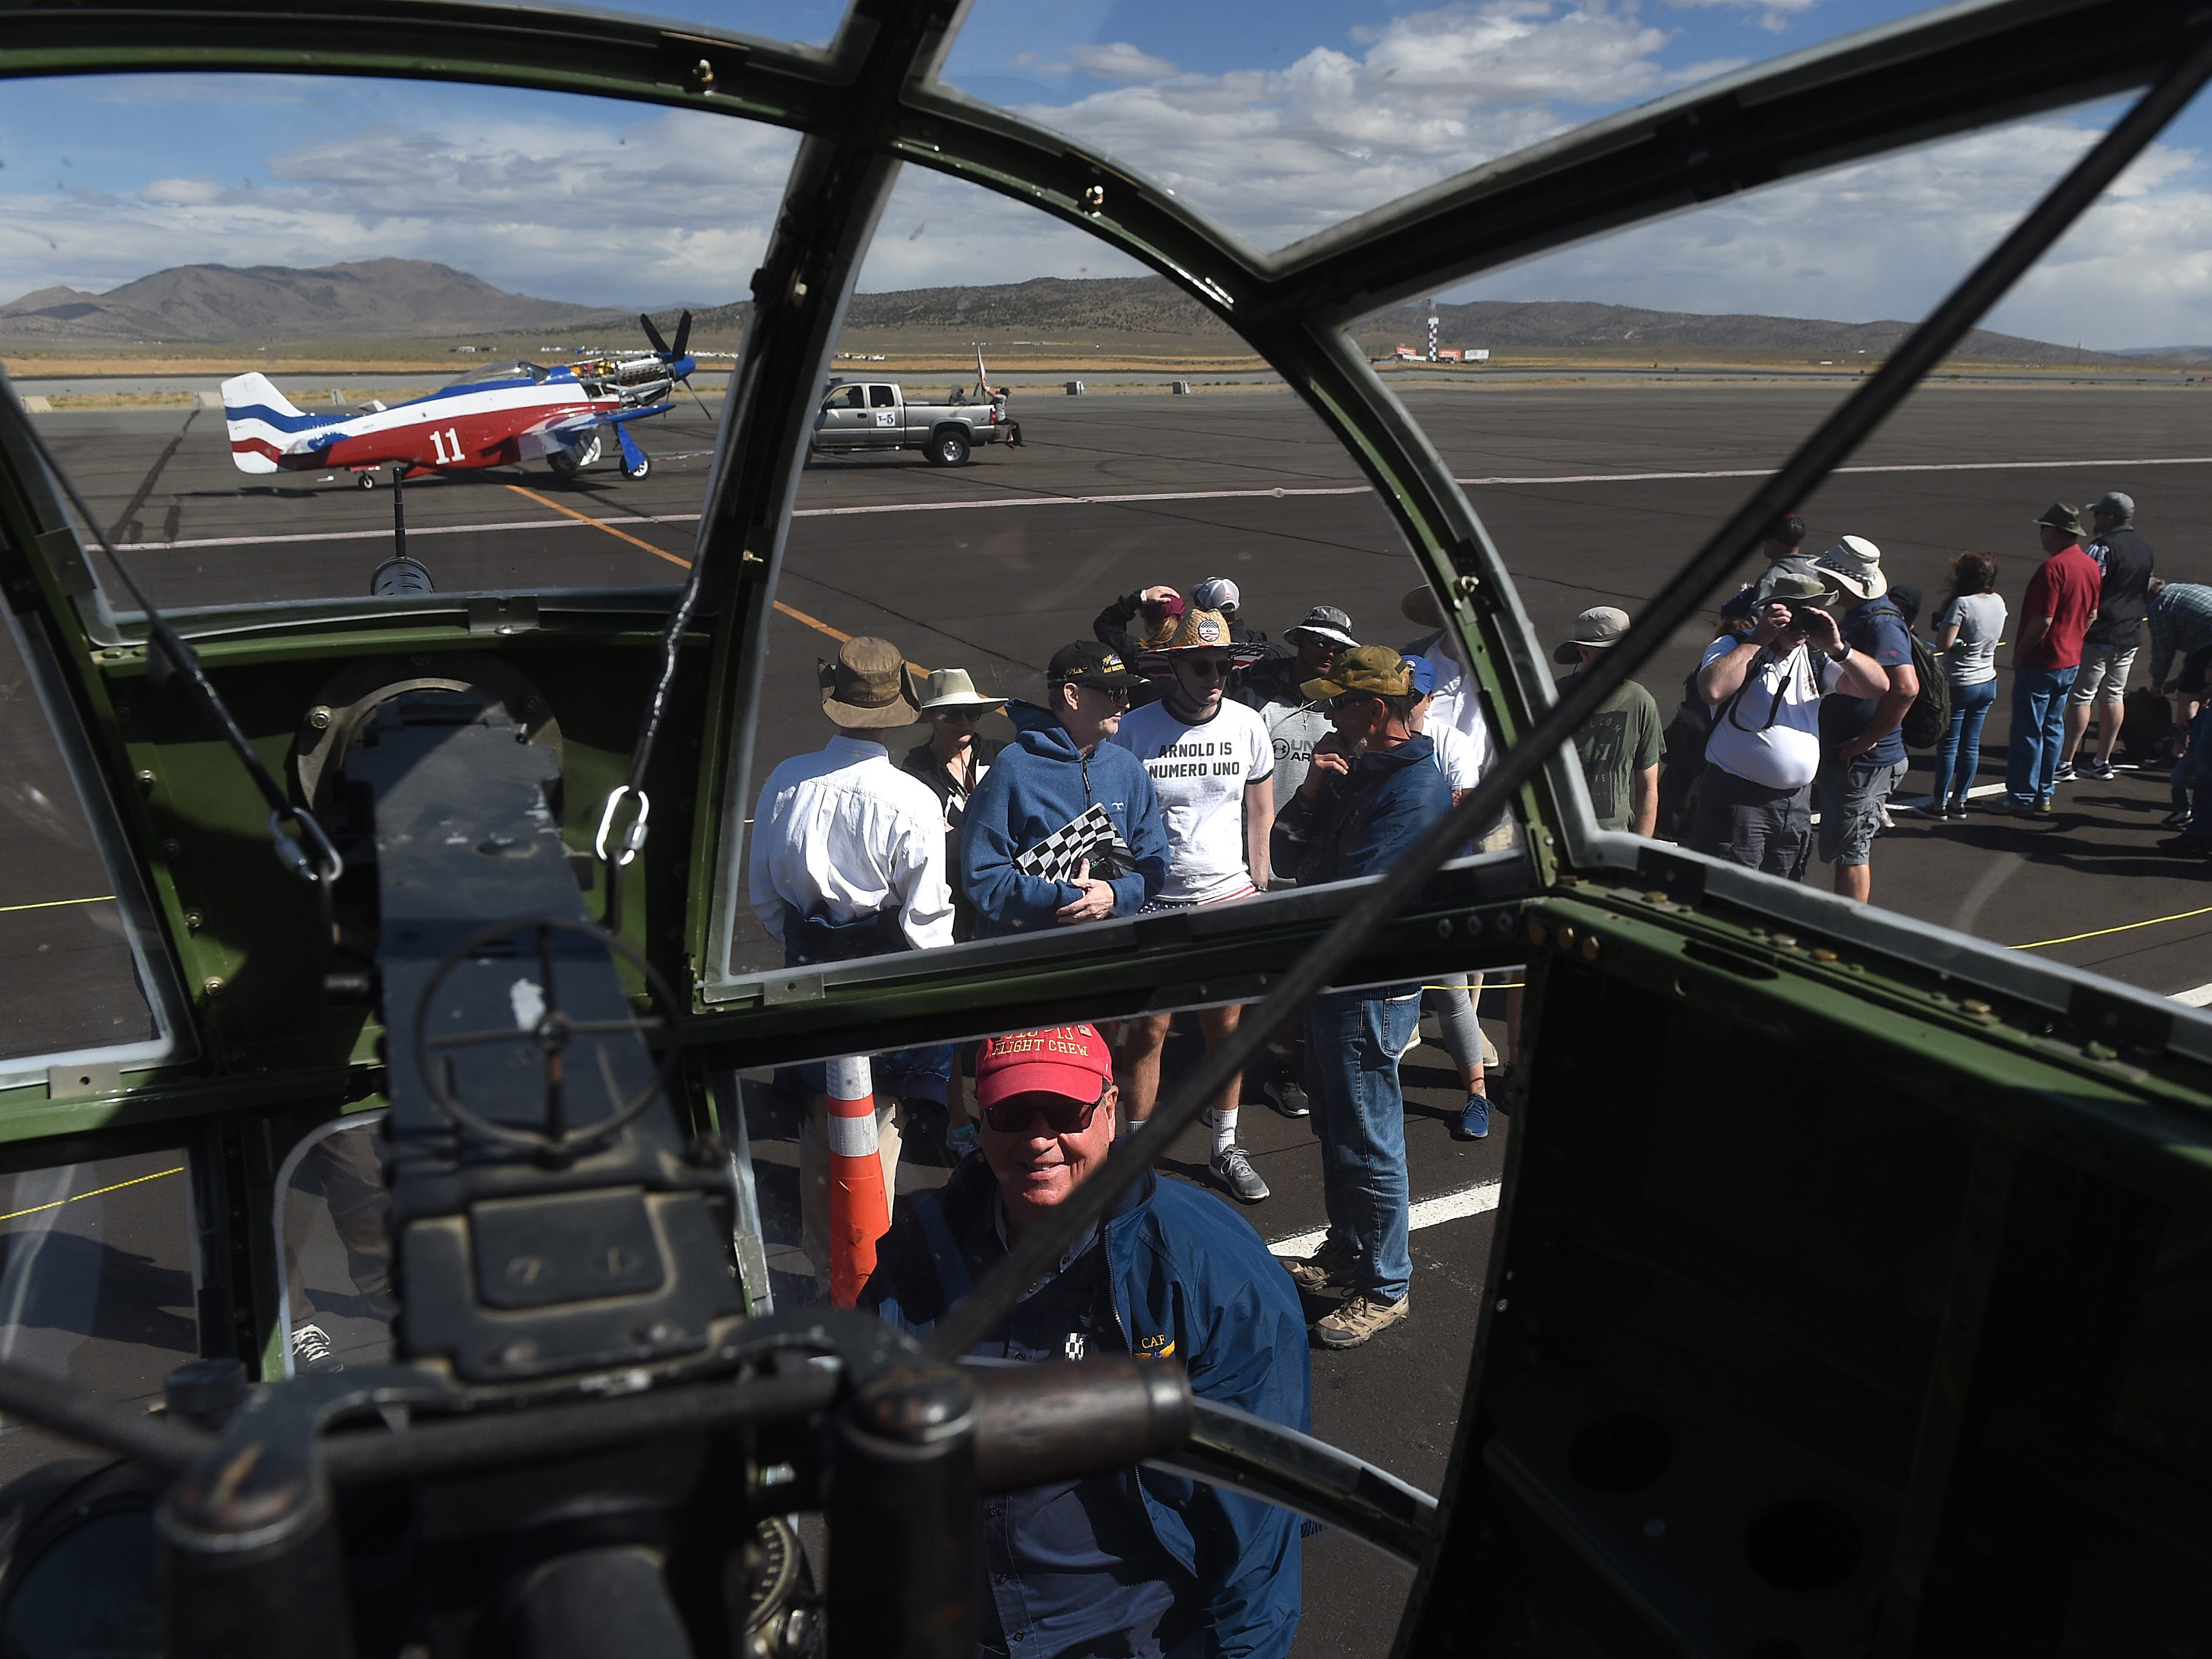 Race fans and are seen from the vantage point of the front gunner position in a PBJ B-25 Marine Bomber at the STIHL National Championship Air Races at Stead Airport north of Reno on Sept. 15, 2018.